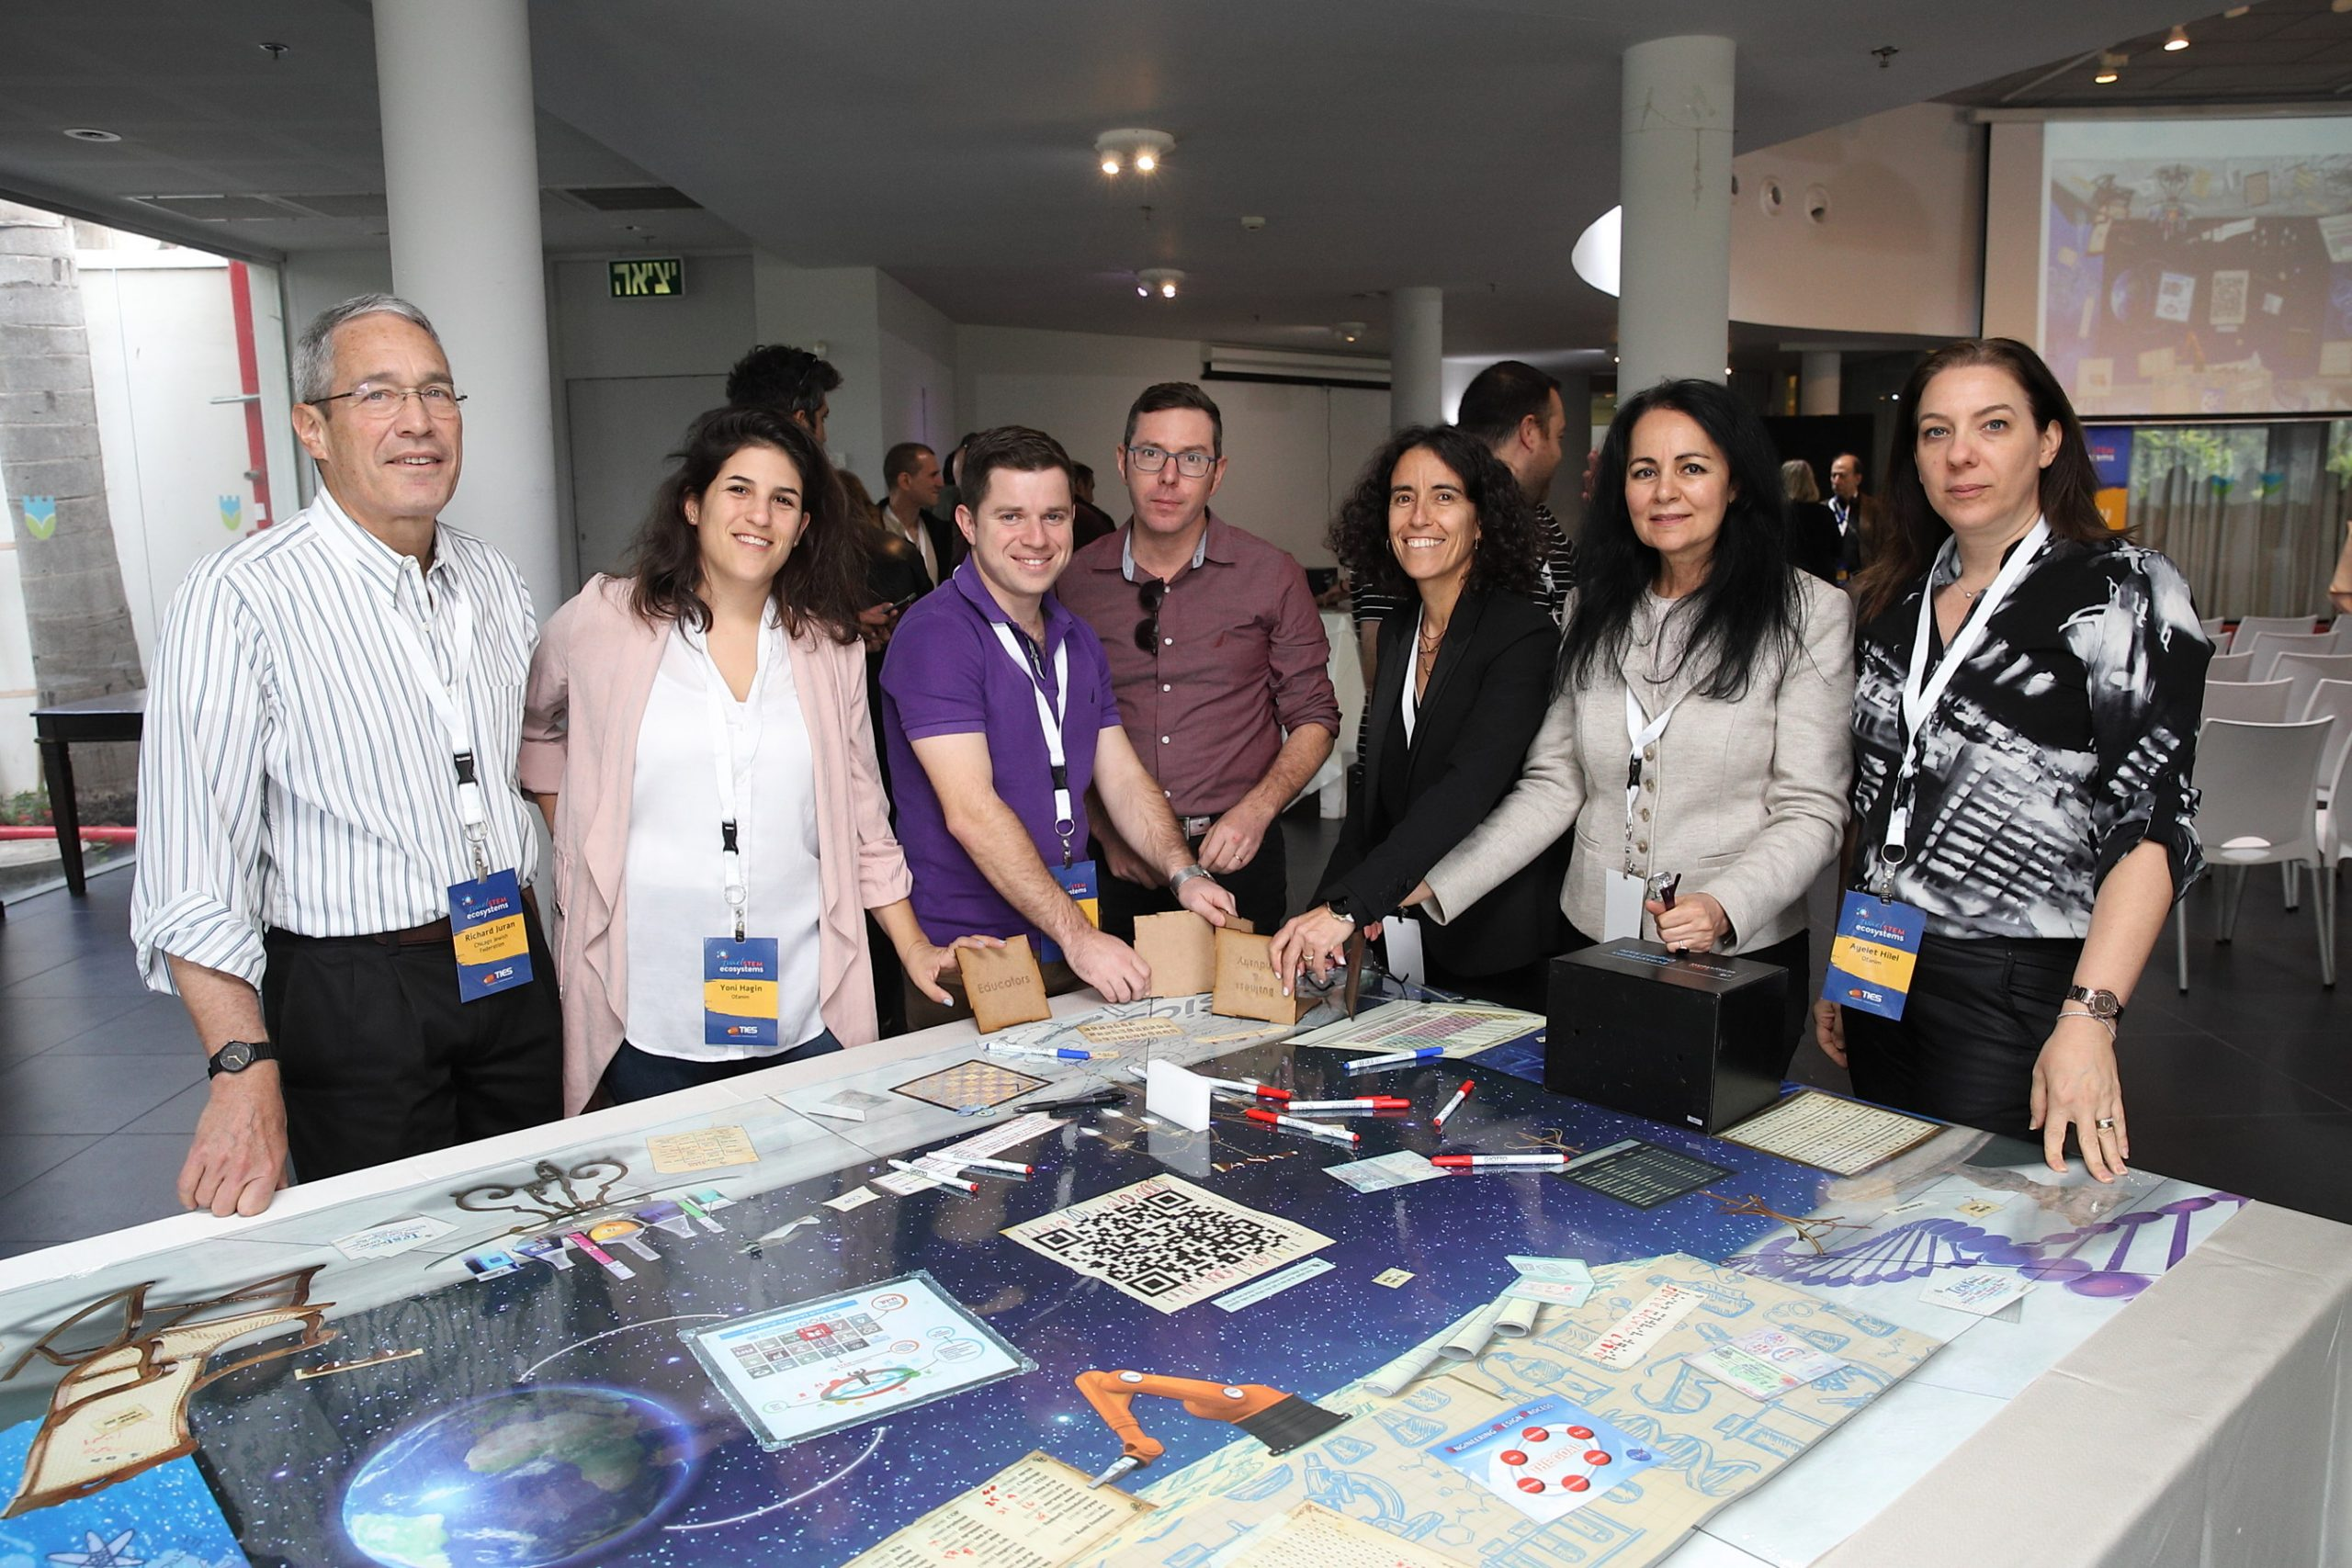 More than 150 leaders participate in the nation's first Israel STEM Ecosystems convening. Sessions include Design Studios and learning about best practices from successful U.S.-based STEM Learning Ecosystems. Learn more at www.stemecosystems.org